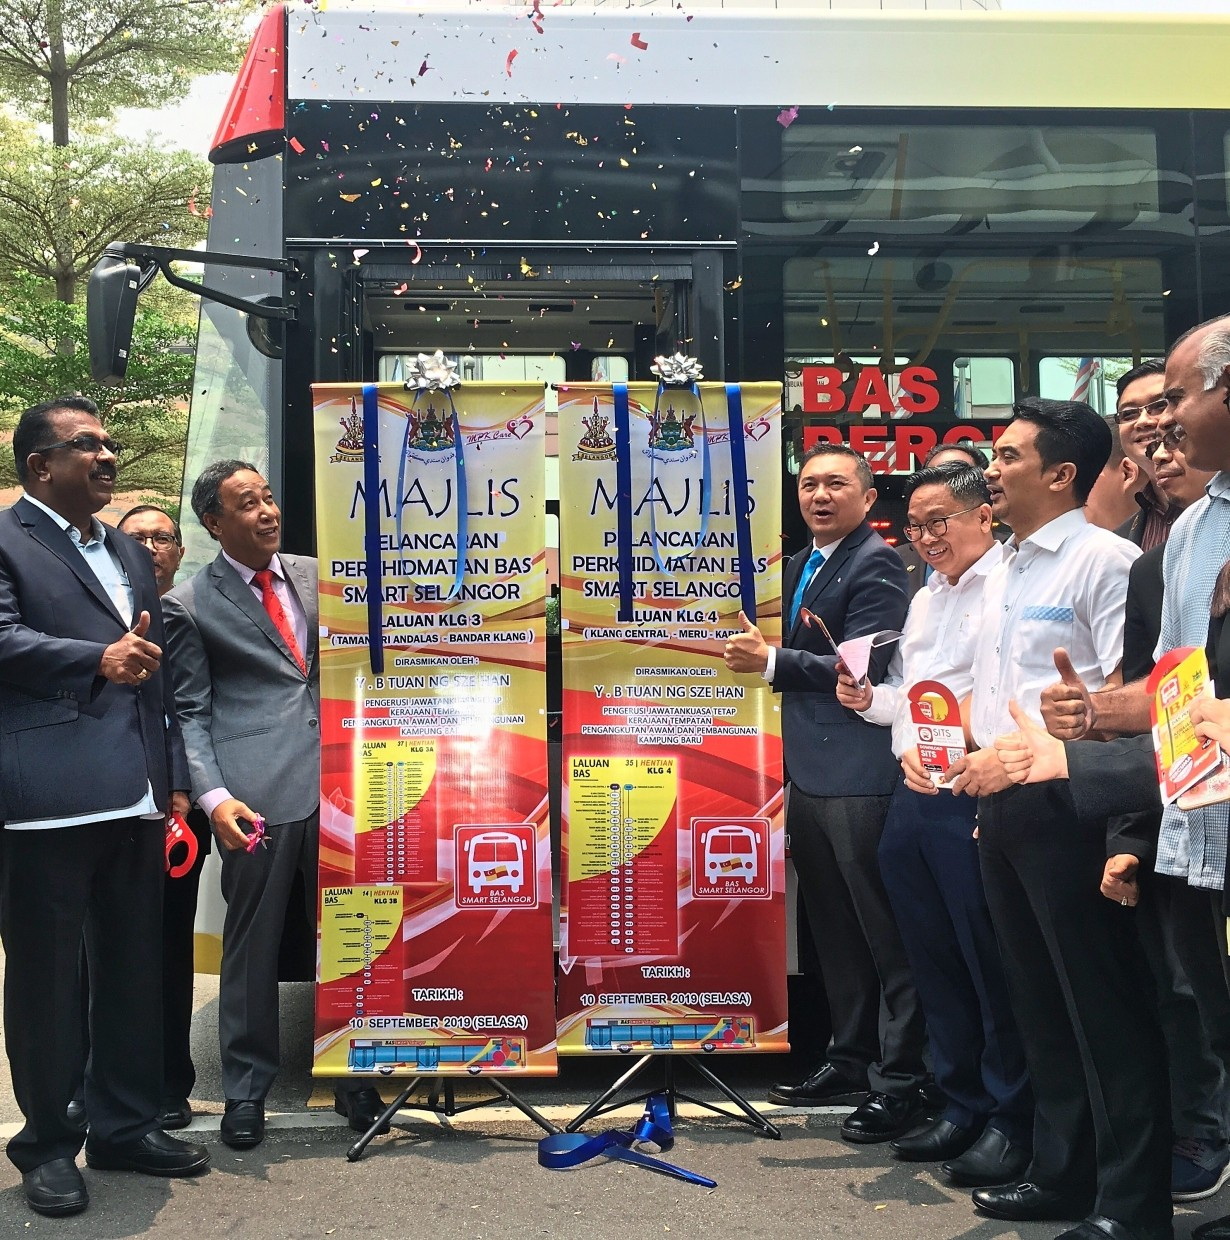 (From left) Sentosa assemblyman G. Gunaraj, Yasid and Ng launching the new Smart Selangor routes in  Klang. With them are MPK councillors and other representatives.